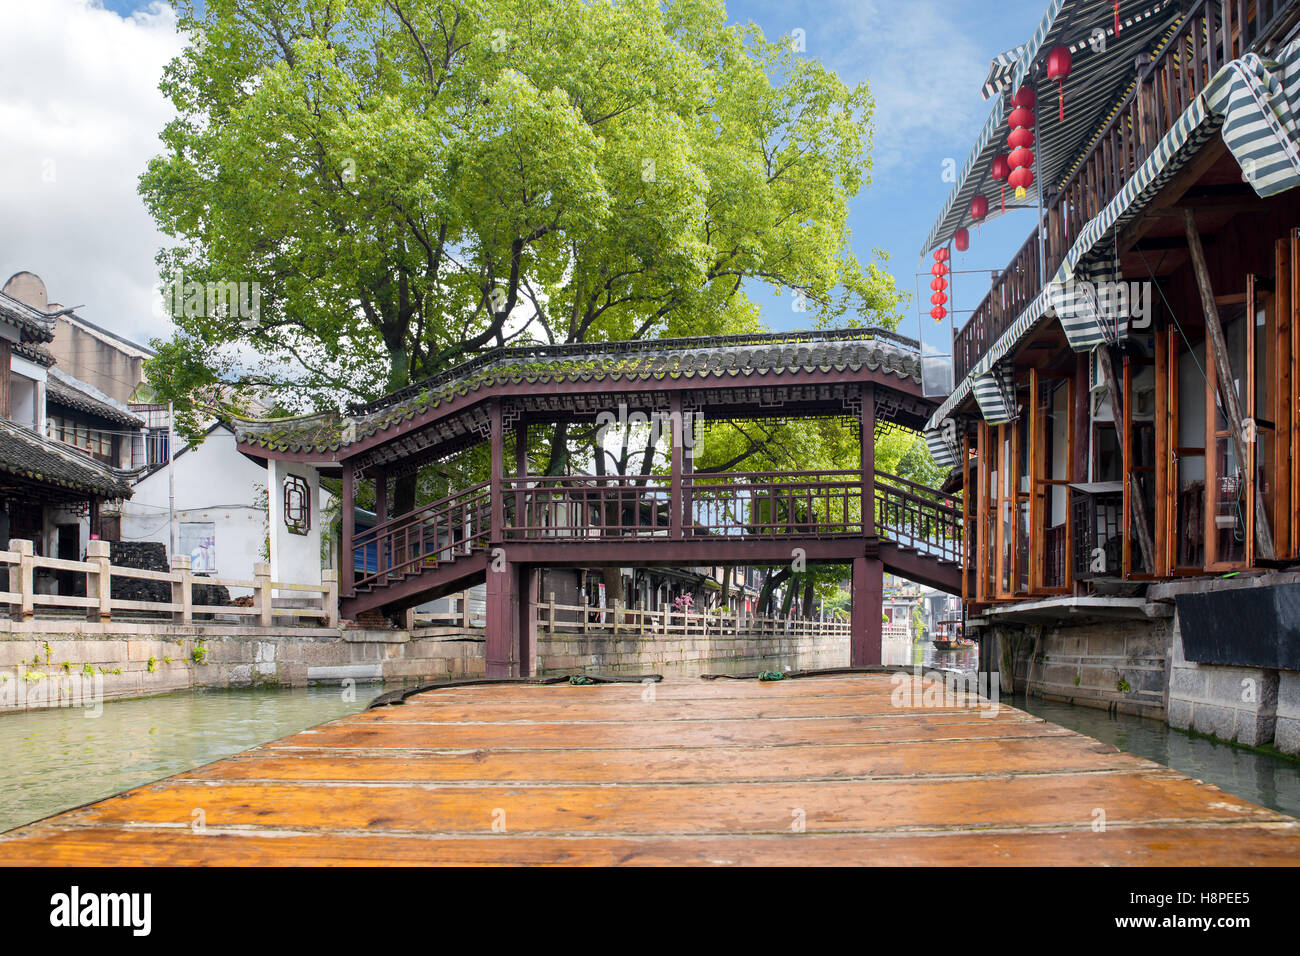 Point of view of China traditional tourist boats along canals of Shanghai Zhujiajiao Water Town in Shanghai, China. - Stock Image